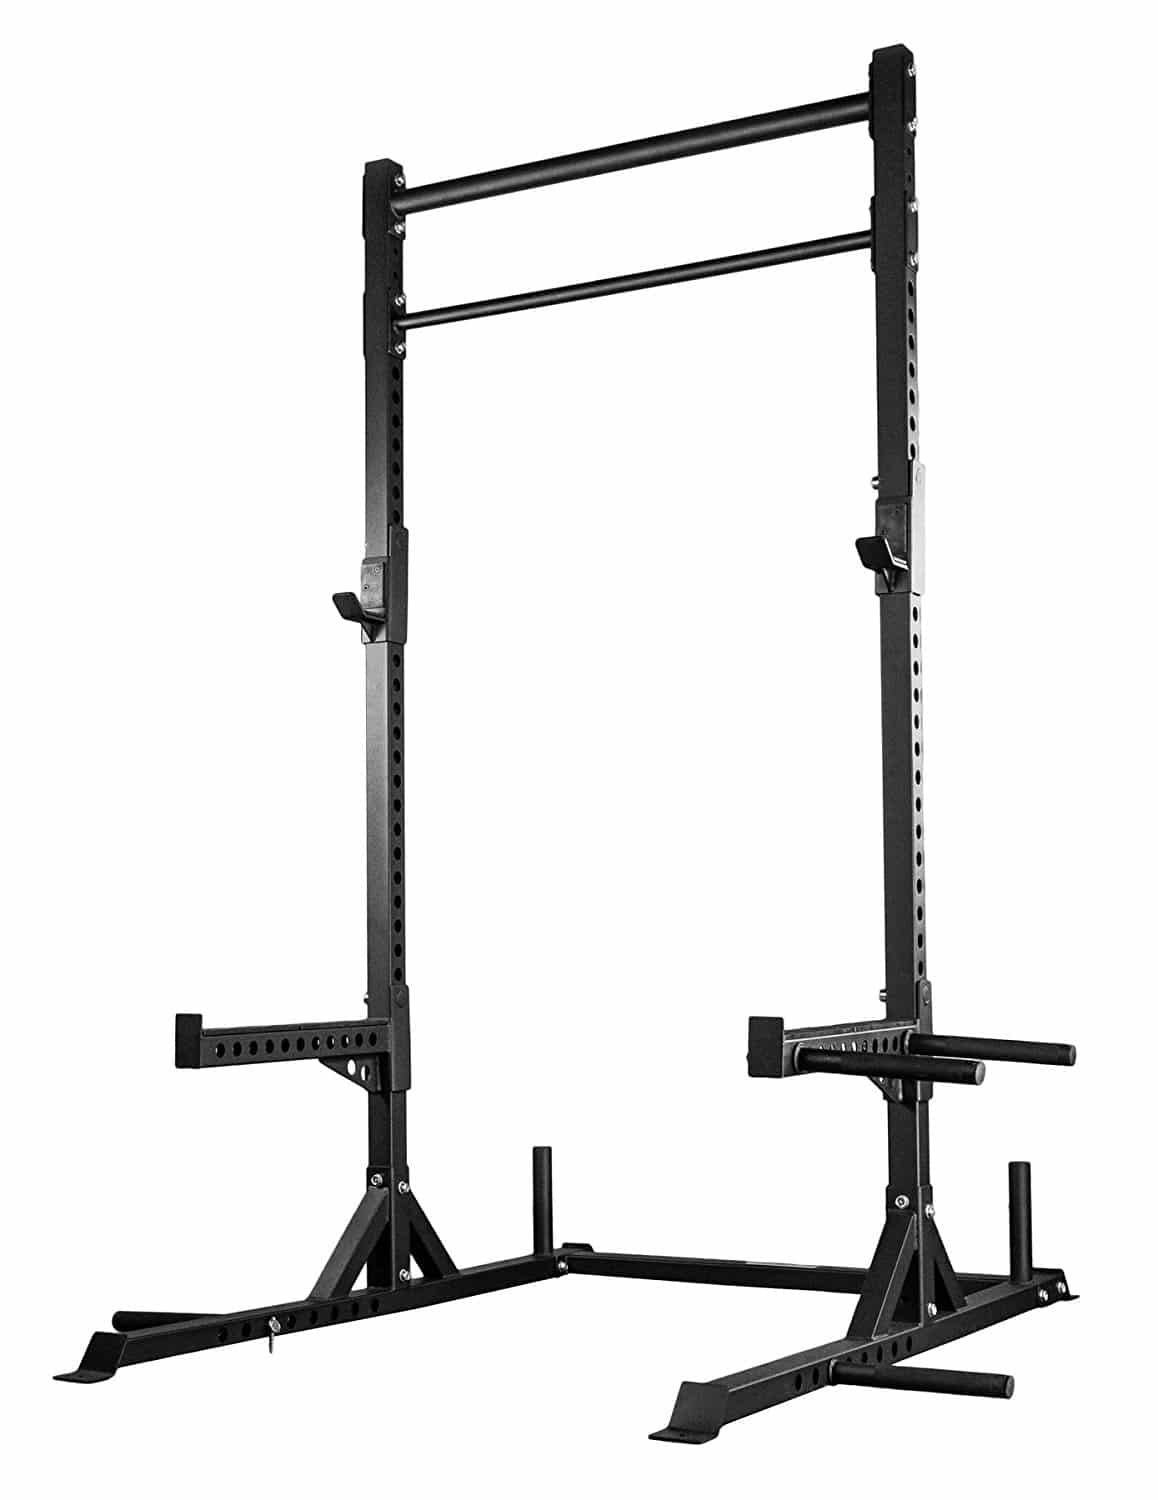 TITAN X-3 ADJUSTABLE SQUAT STAND W/SPOTTER ARMS & PULL UP BAR 3″ X 3